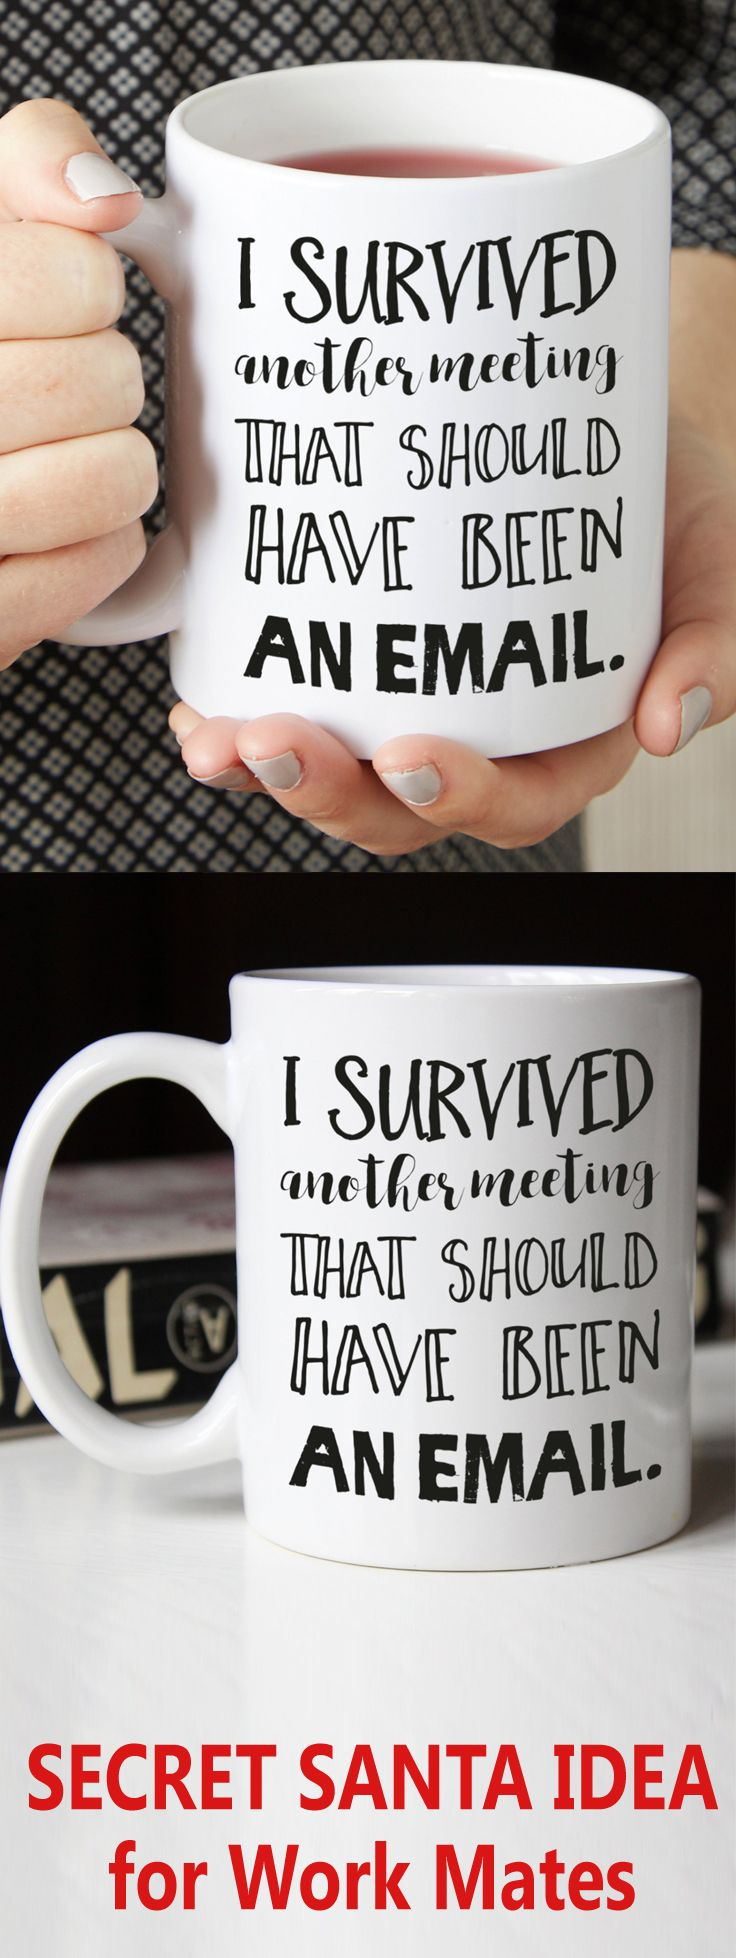 Secret Santa Mug – I Survived another meeting that should have been an email. Secret Santa Ideas for Work mates or bff best friend. Makes a perfect gift for your favorite co-worker, male or female friend, or job-hating family member. #secretsanta #giftsfo http://www.giftideascorner.com/gifts-coworkers